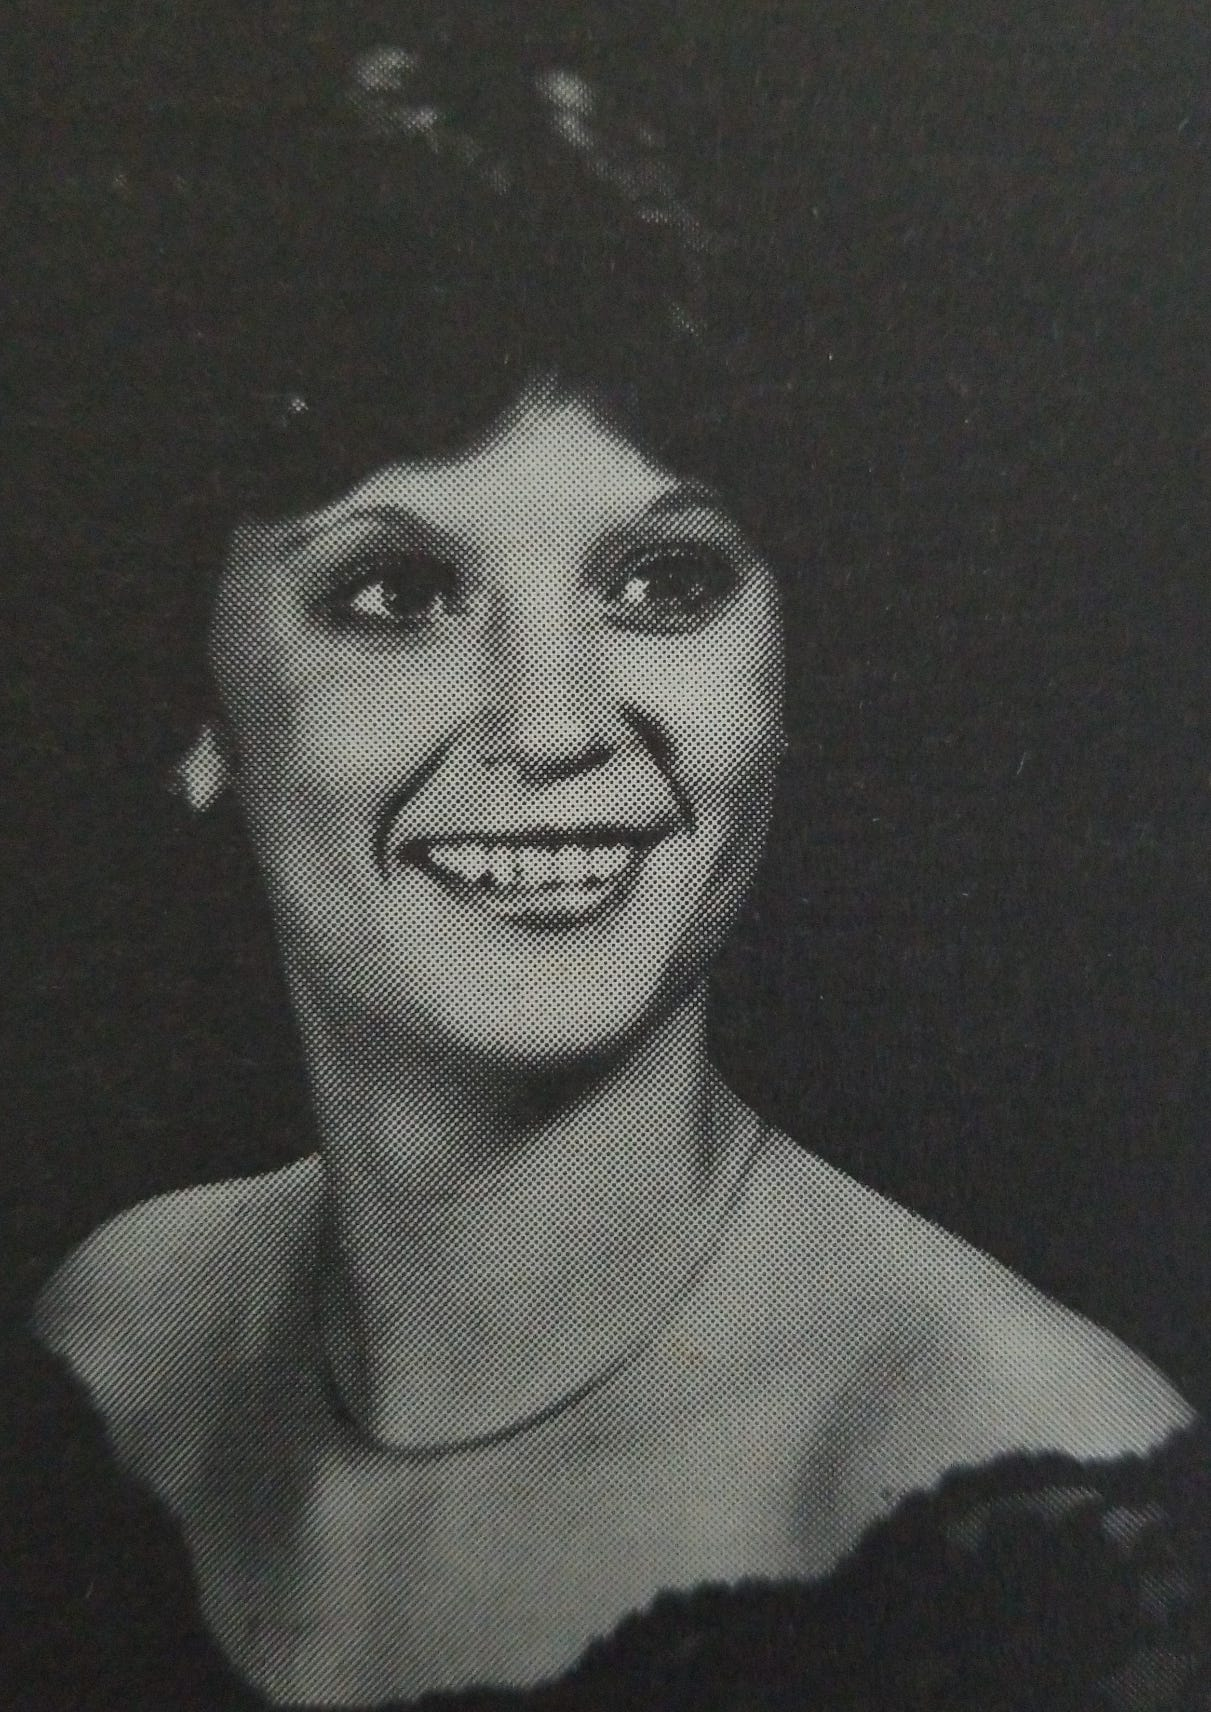 Donna Perry was 25 when her body was found in Hatchie Wildlife Refuge in July 1986. More than 30 years later, the man convicted of her kidnapping and murder is on parole and seeking evidence for DNA testing.